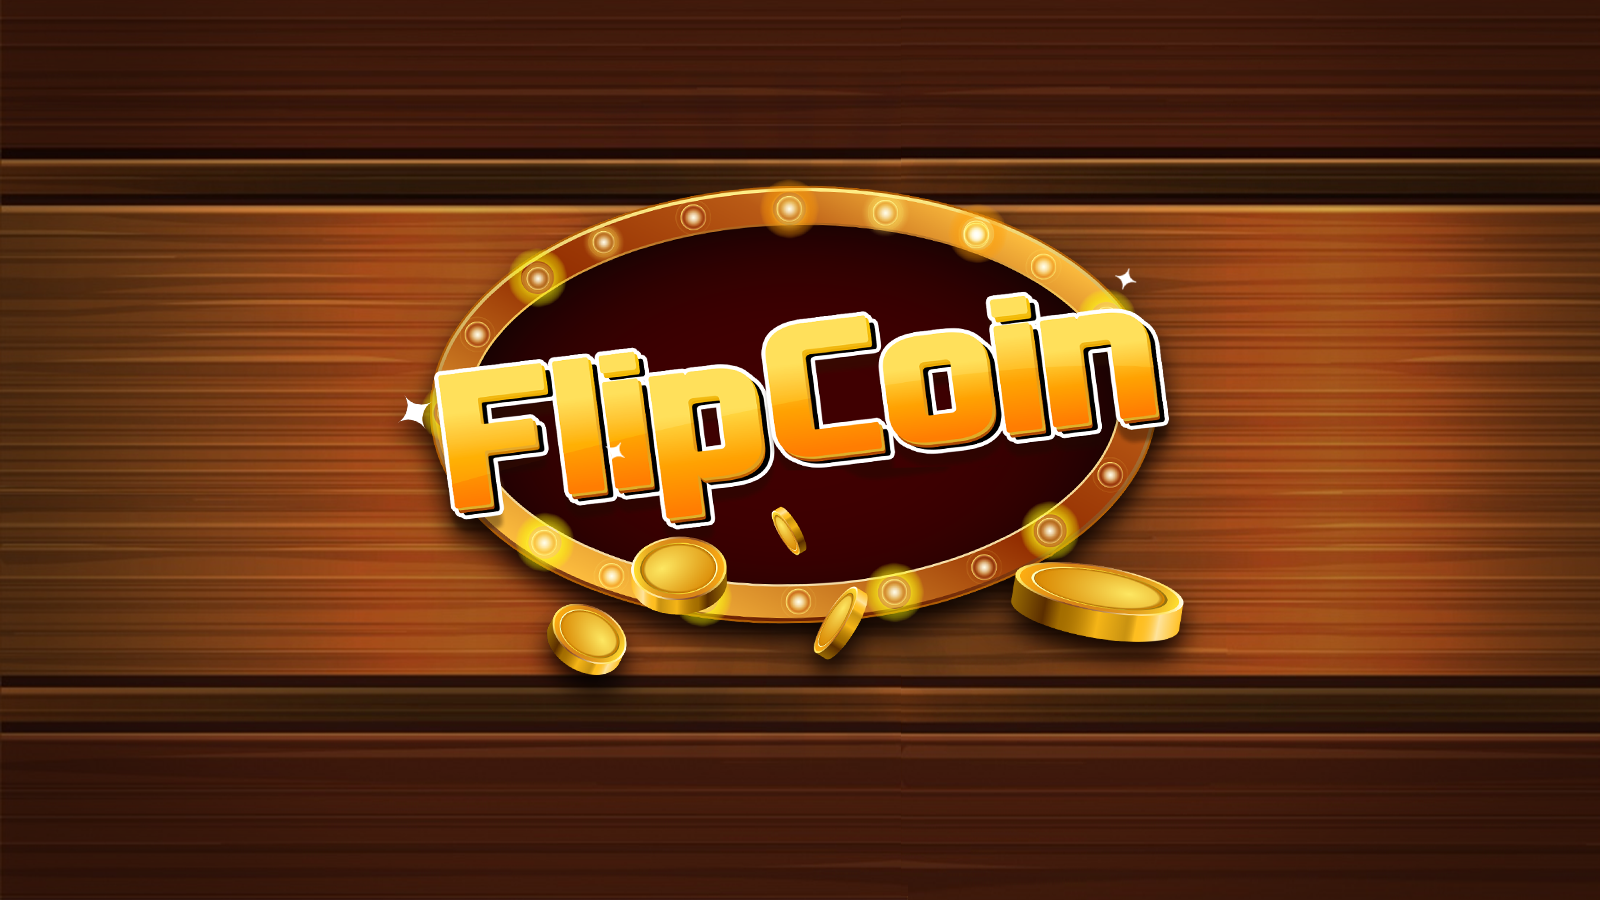 FlipCoin Game - Win Real Money iOS, Android - Mod DB